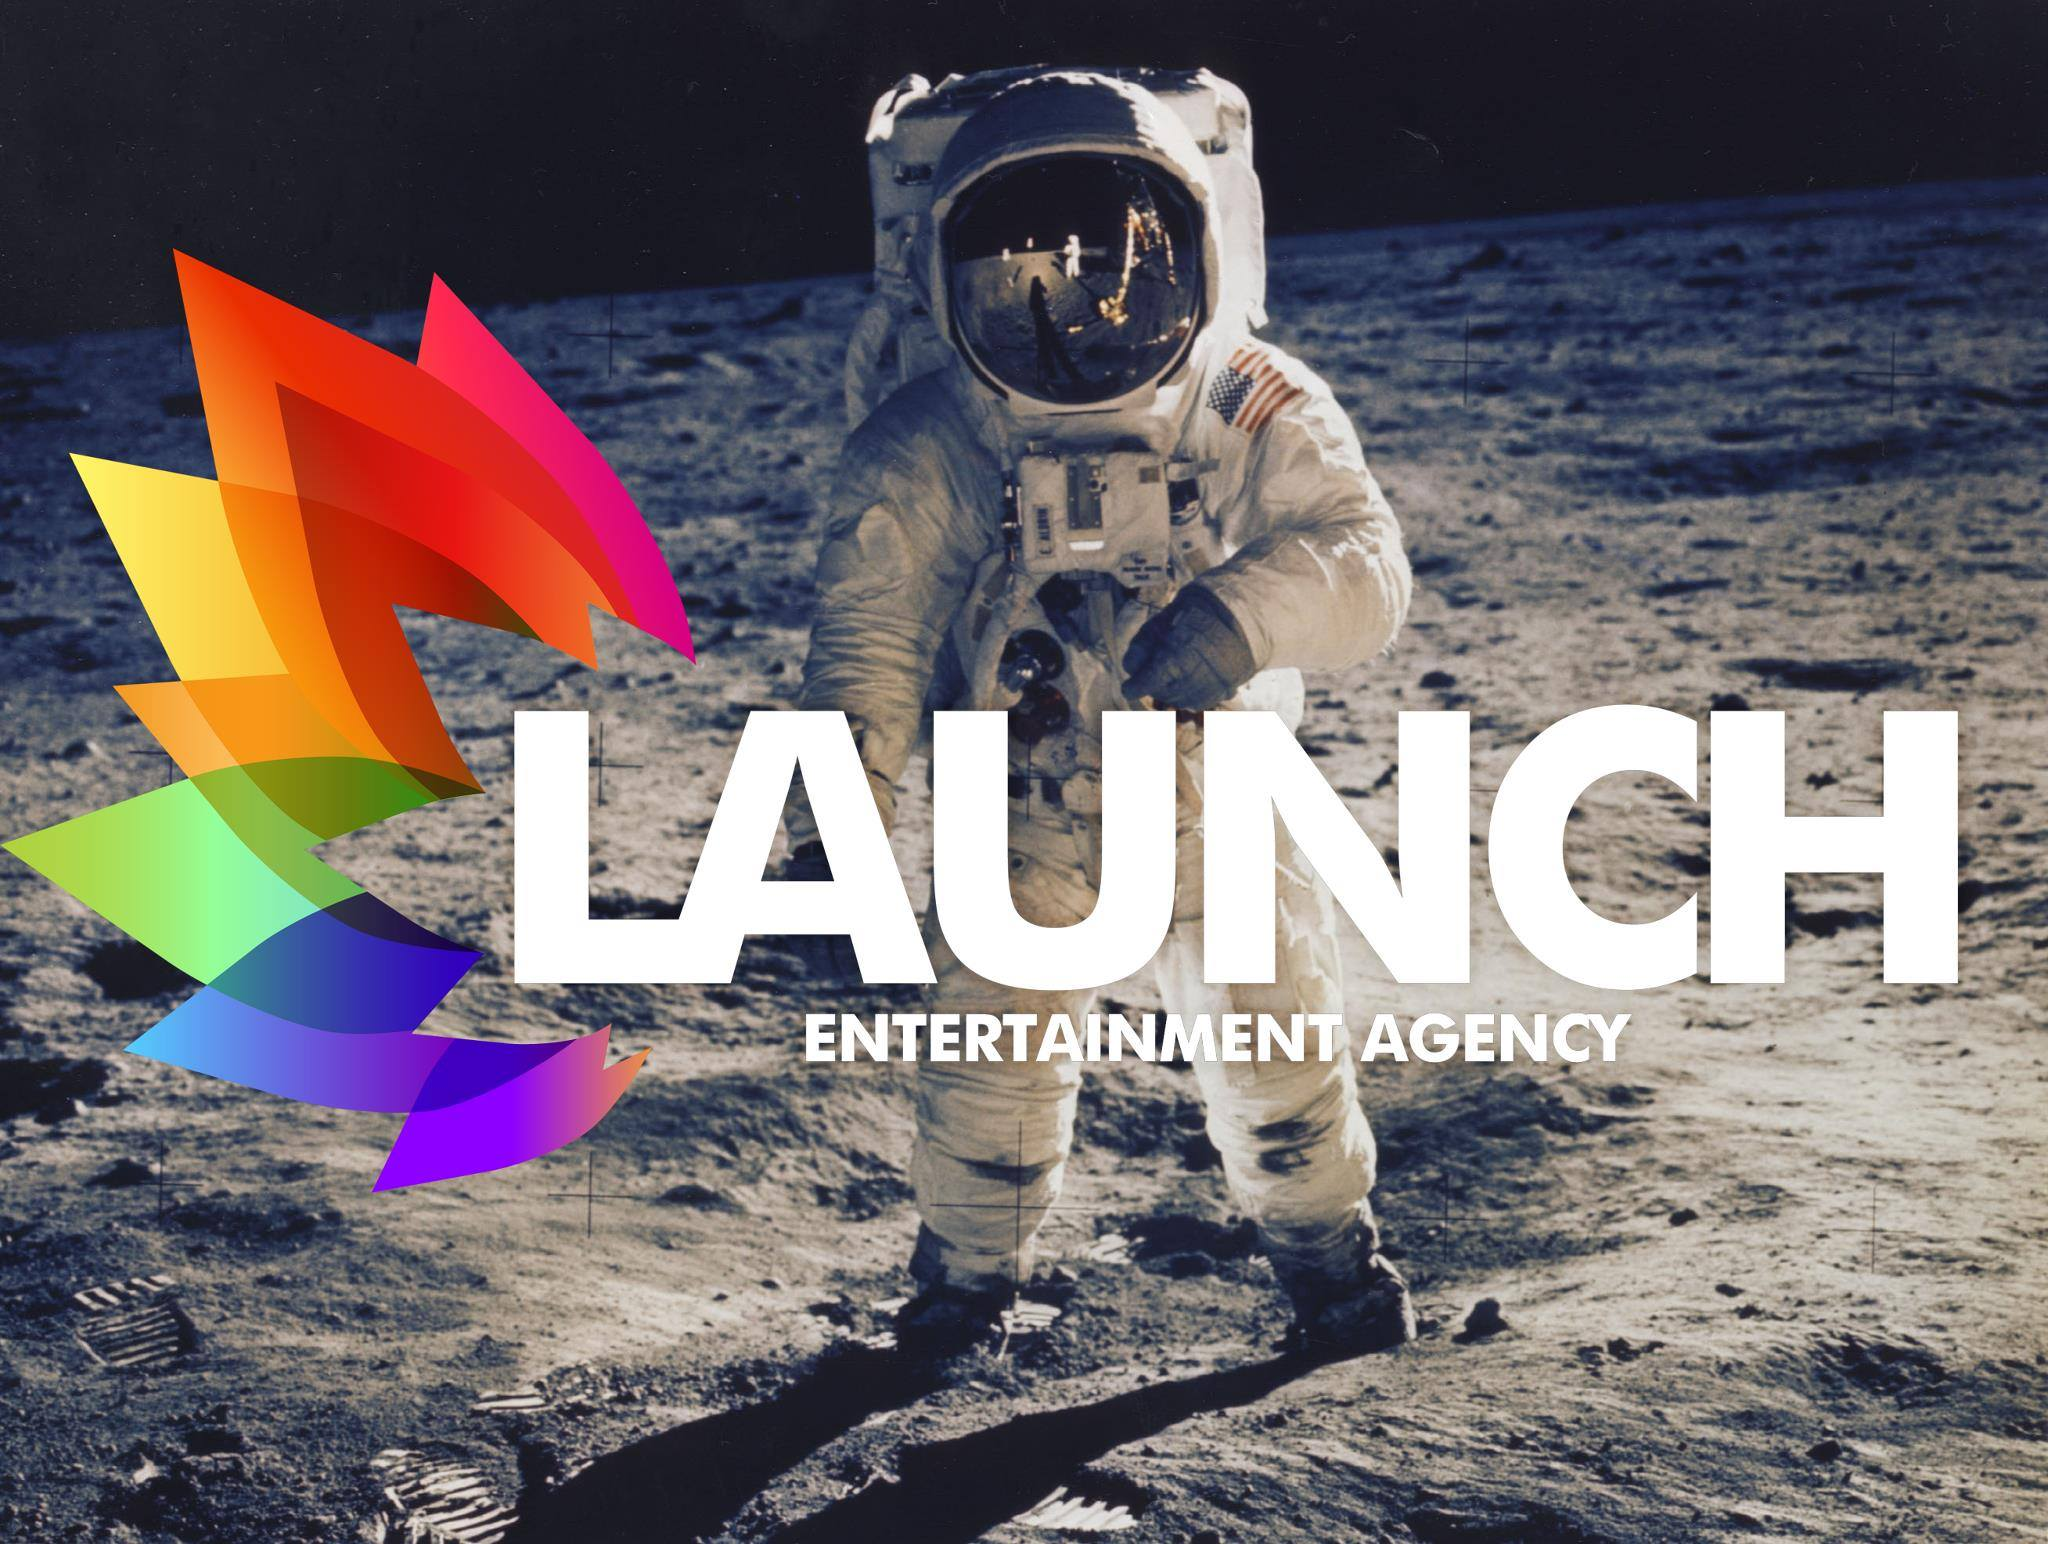 Find tickets from Launch Entertainment Agency